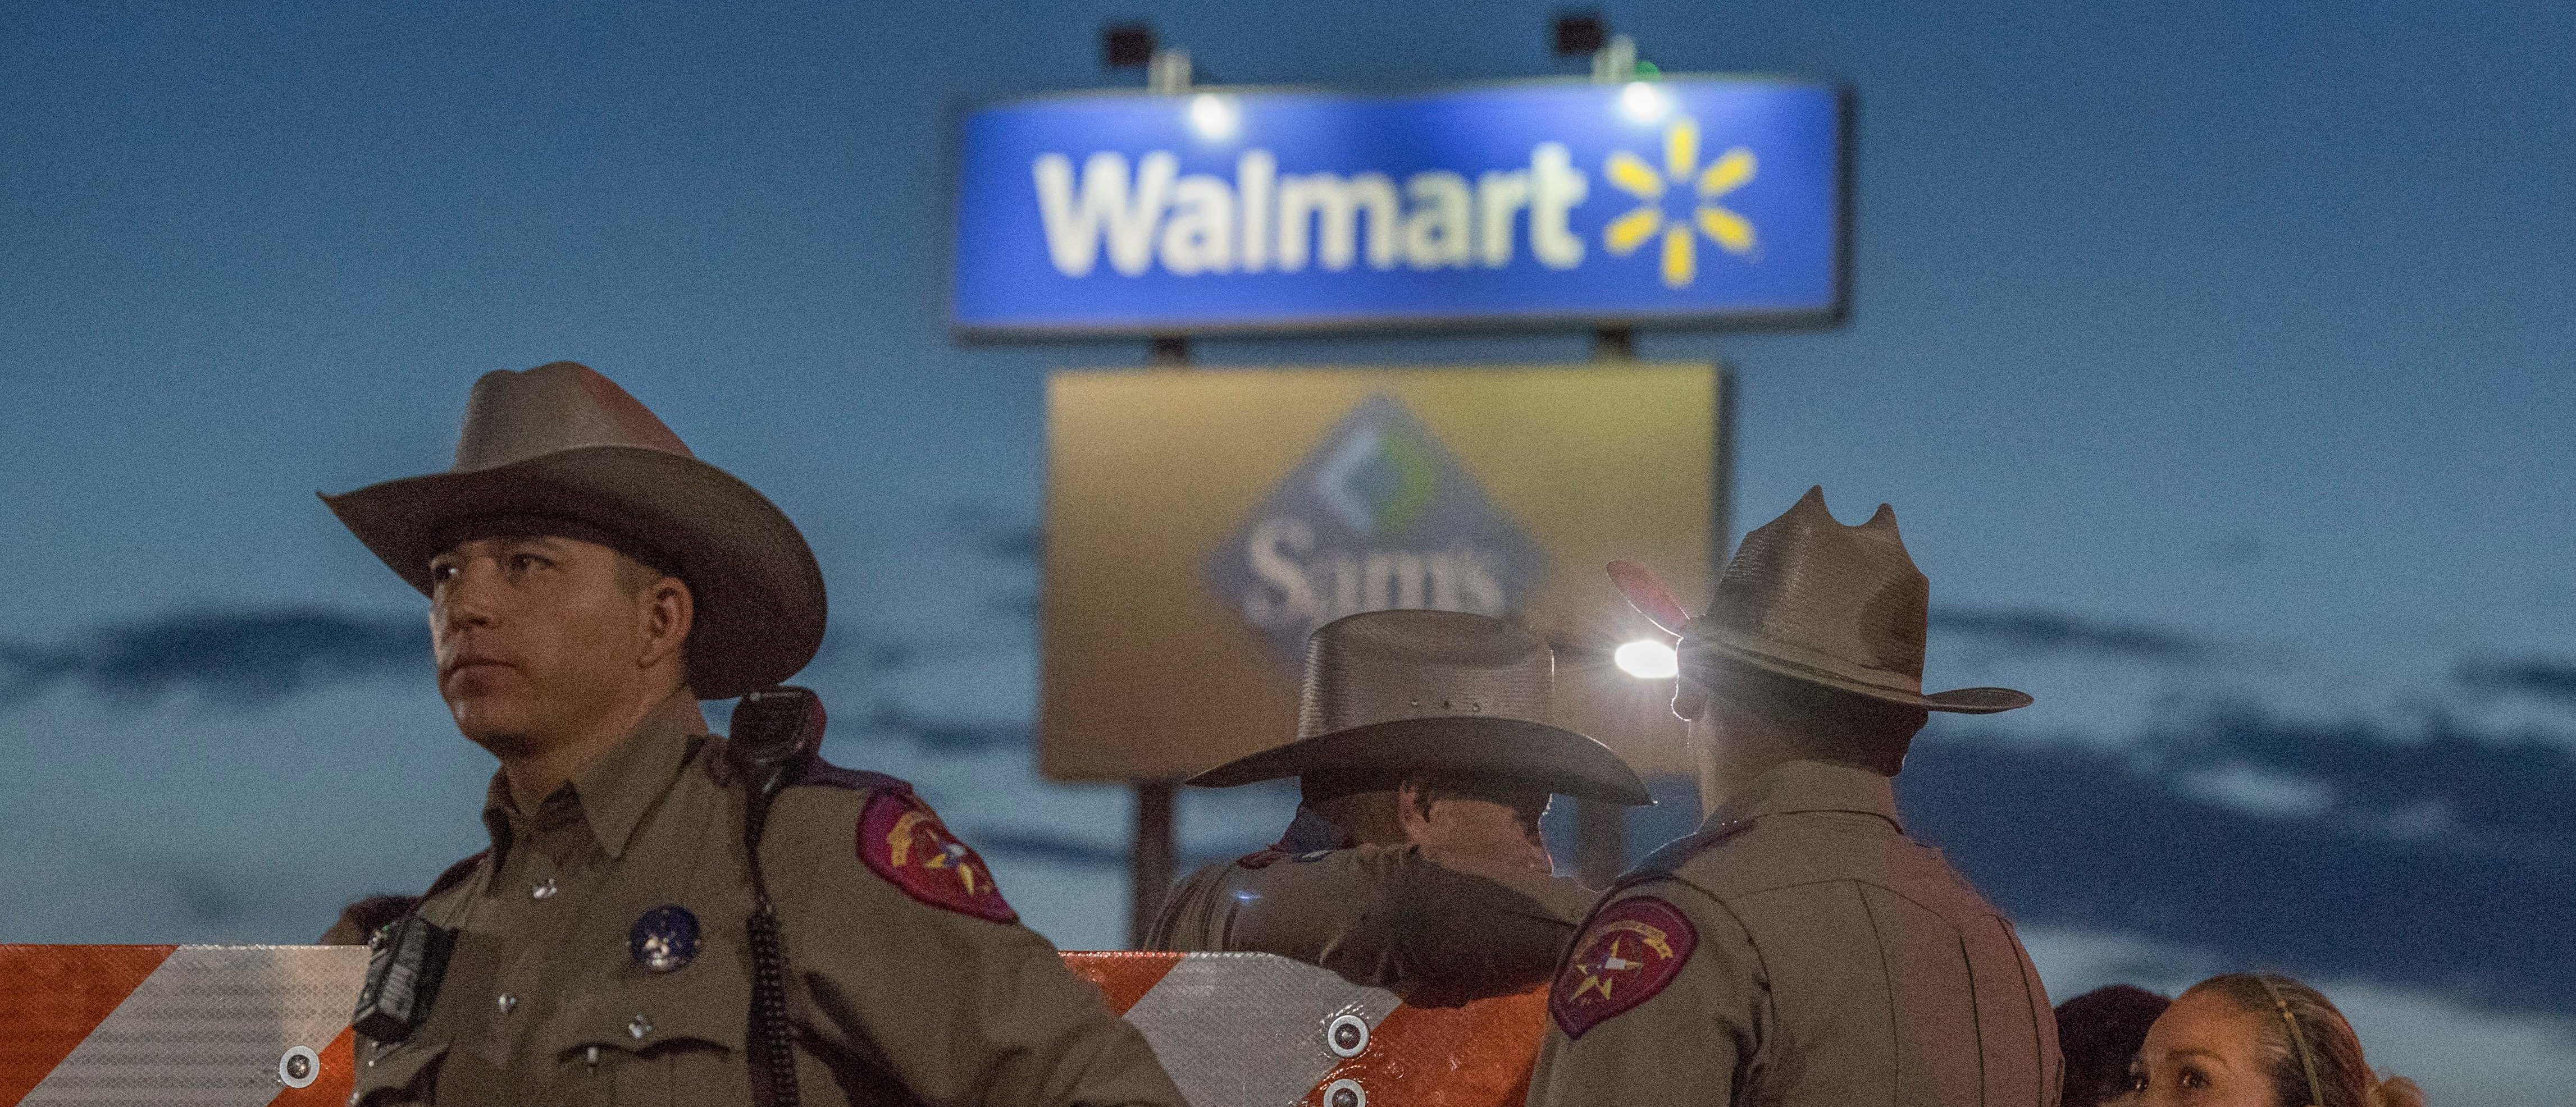 Texas State Troopers keep watch at the makeshift memorial for victims of the shooting that left a total of 22 people dead at the Cielo Vista Mall WalMart in El Paso, Texas, on August 6, 2019. (Photo credit should read MARK RALSTON/AFP/Getty Images)